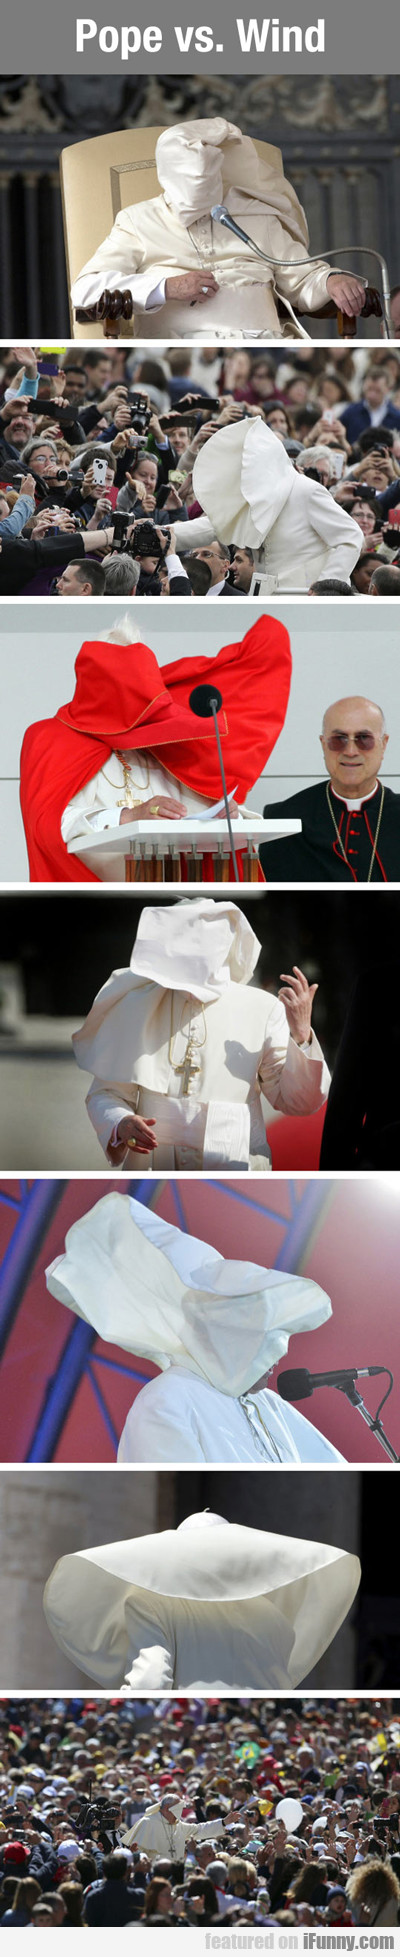 Pope Vs. Wind...